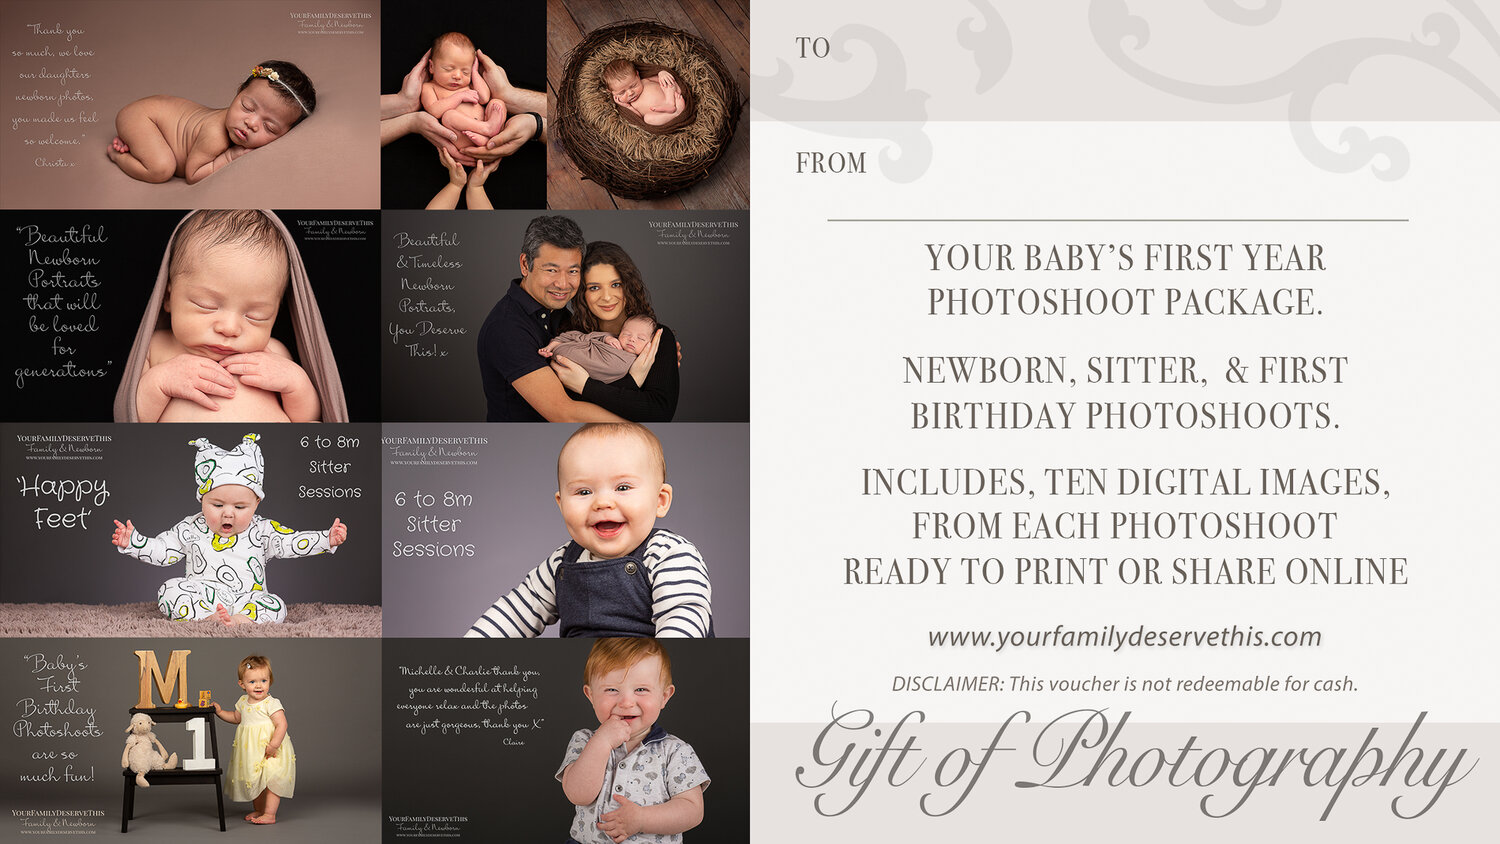 Photoshoot Gift Vouchers Yourfamilydeservethis Newborn And